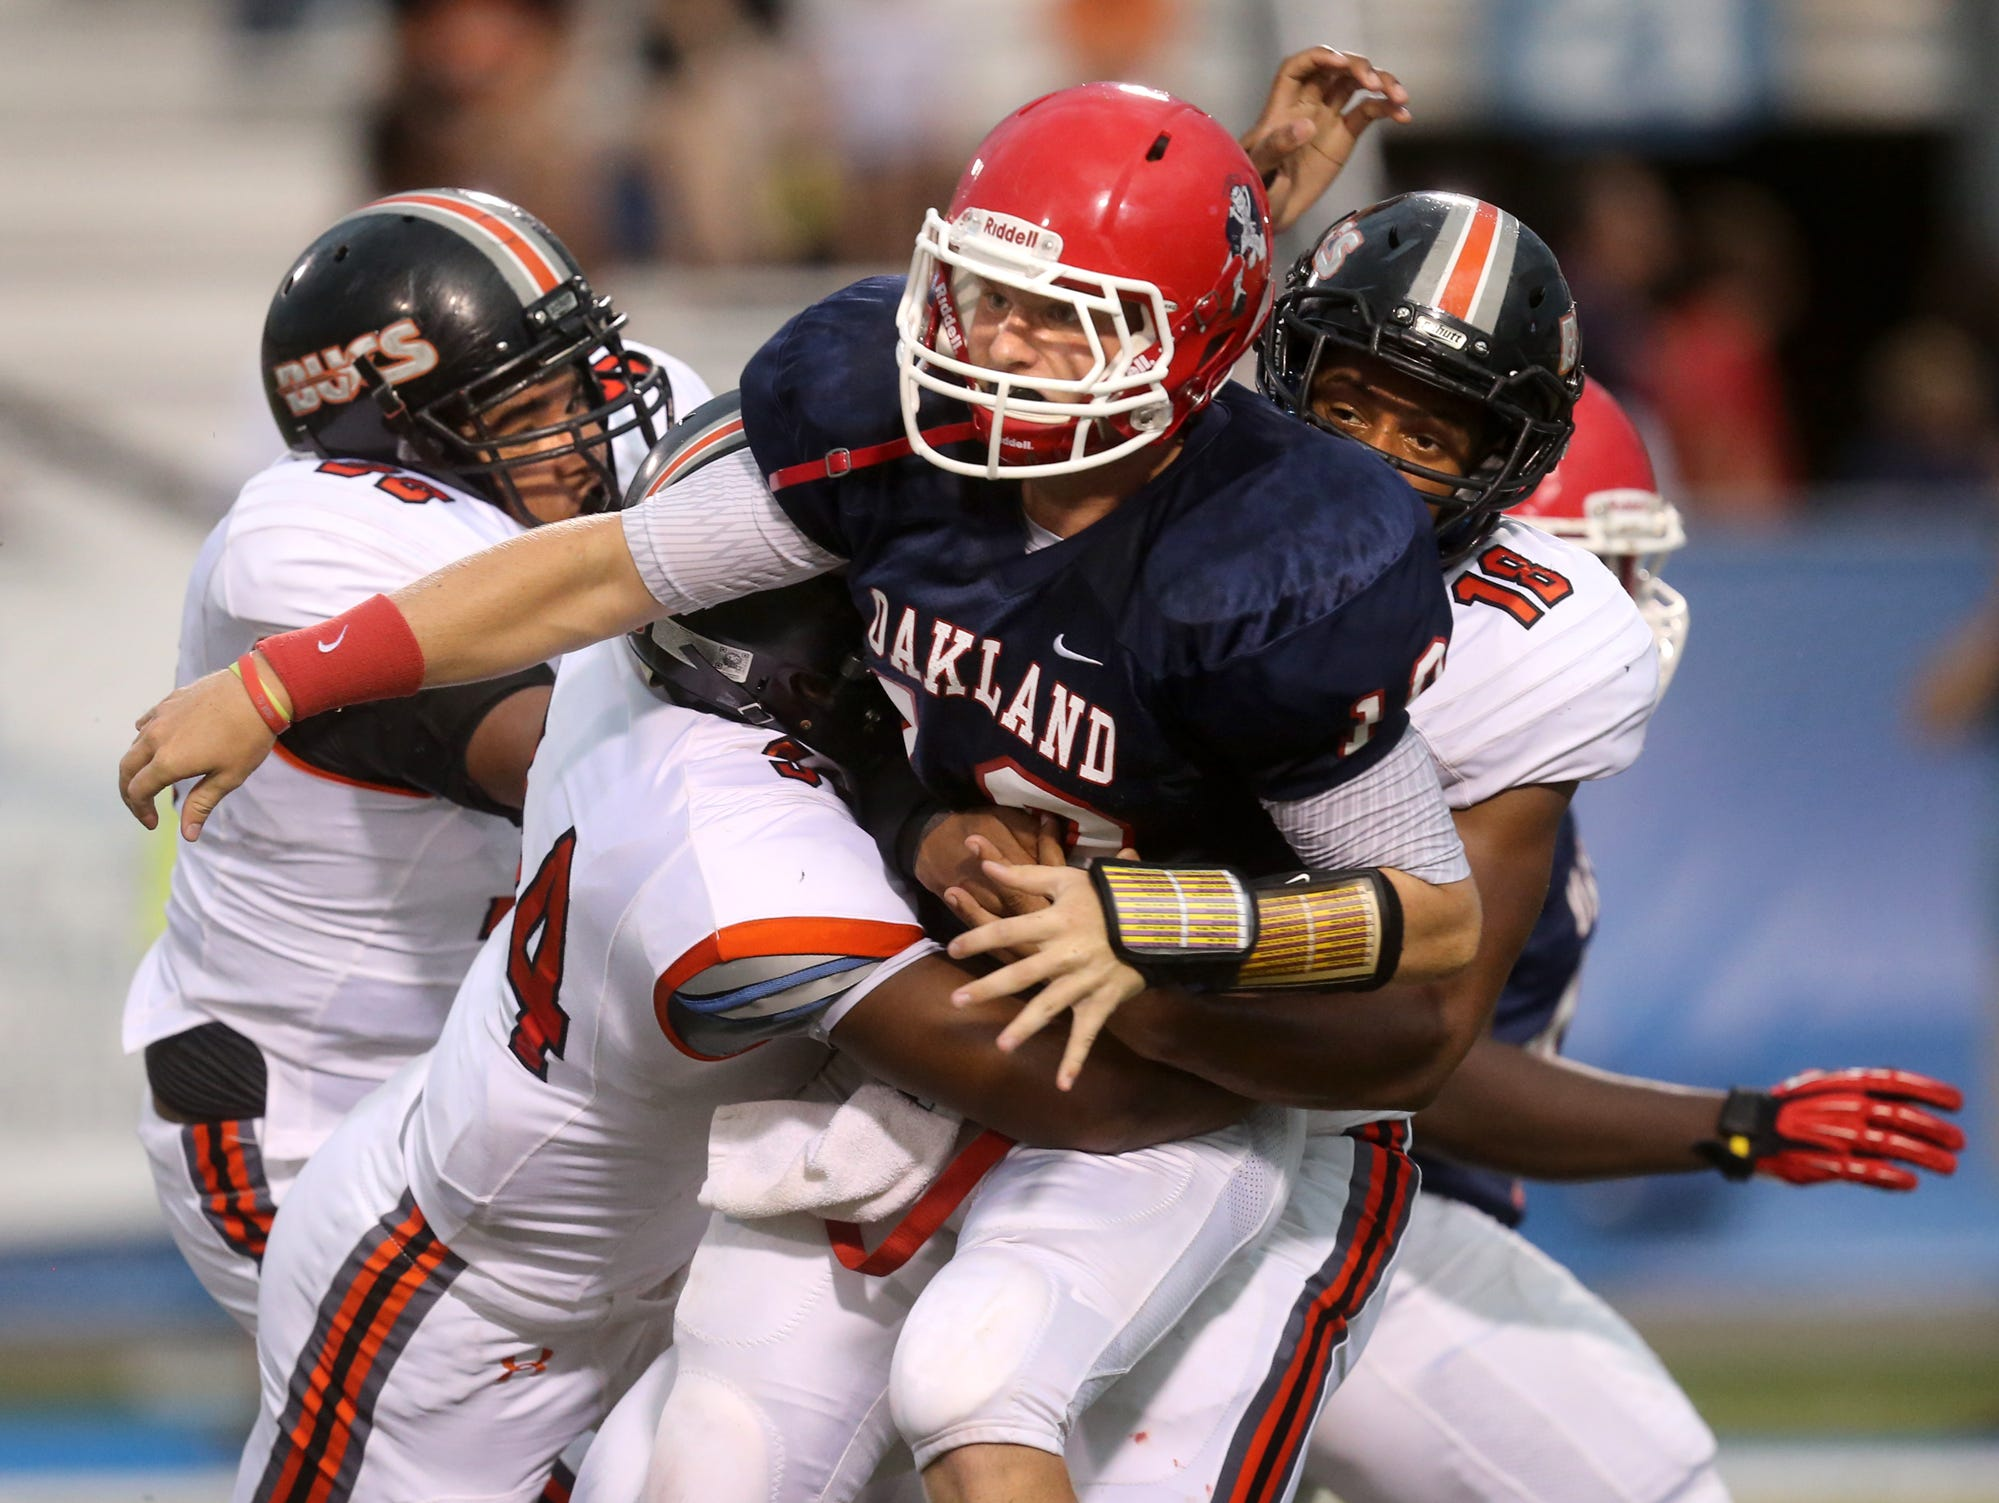 Oakland's quarterback Brendon Matthews (10), gets tackled by Hoover players at the Middle Tennessee Classic at MTSU's Floyd Stadium, on Saturday, Aug. 22, 2015.